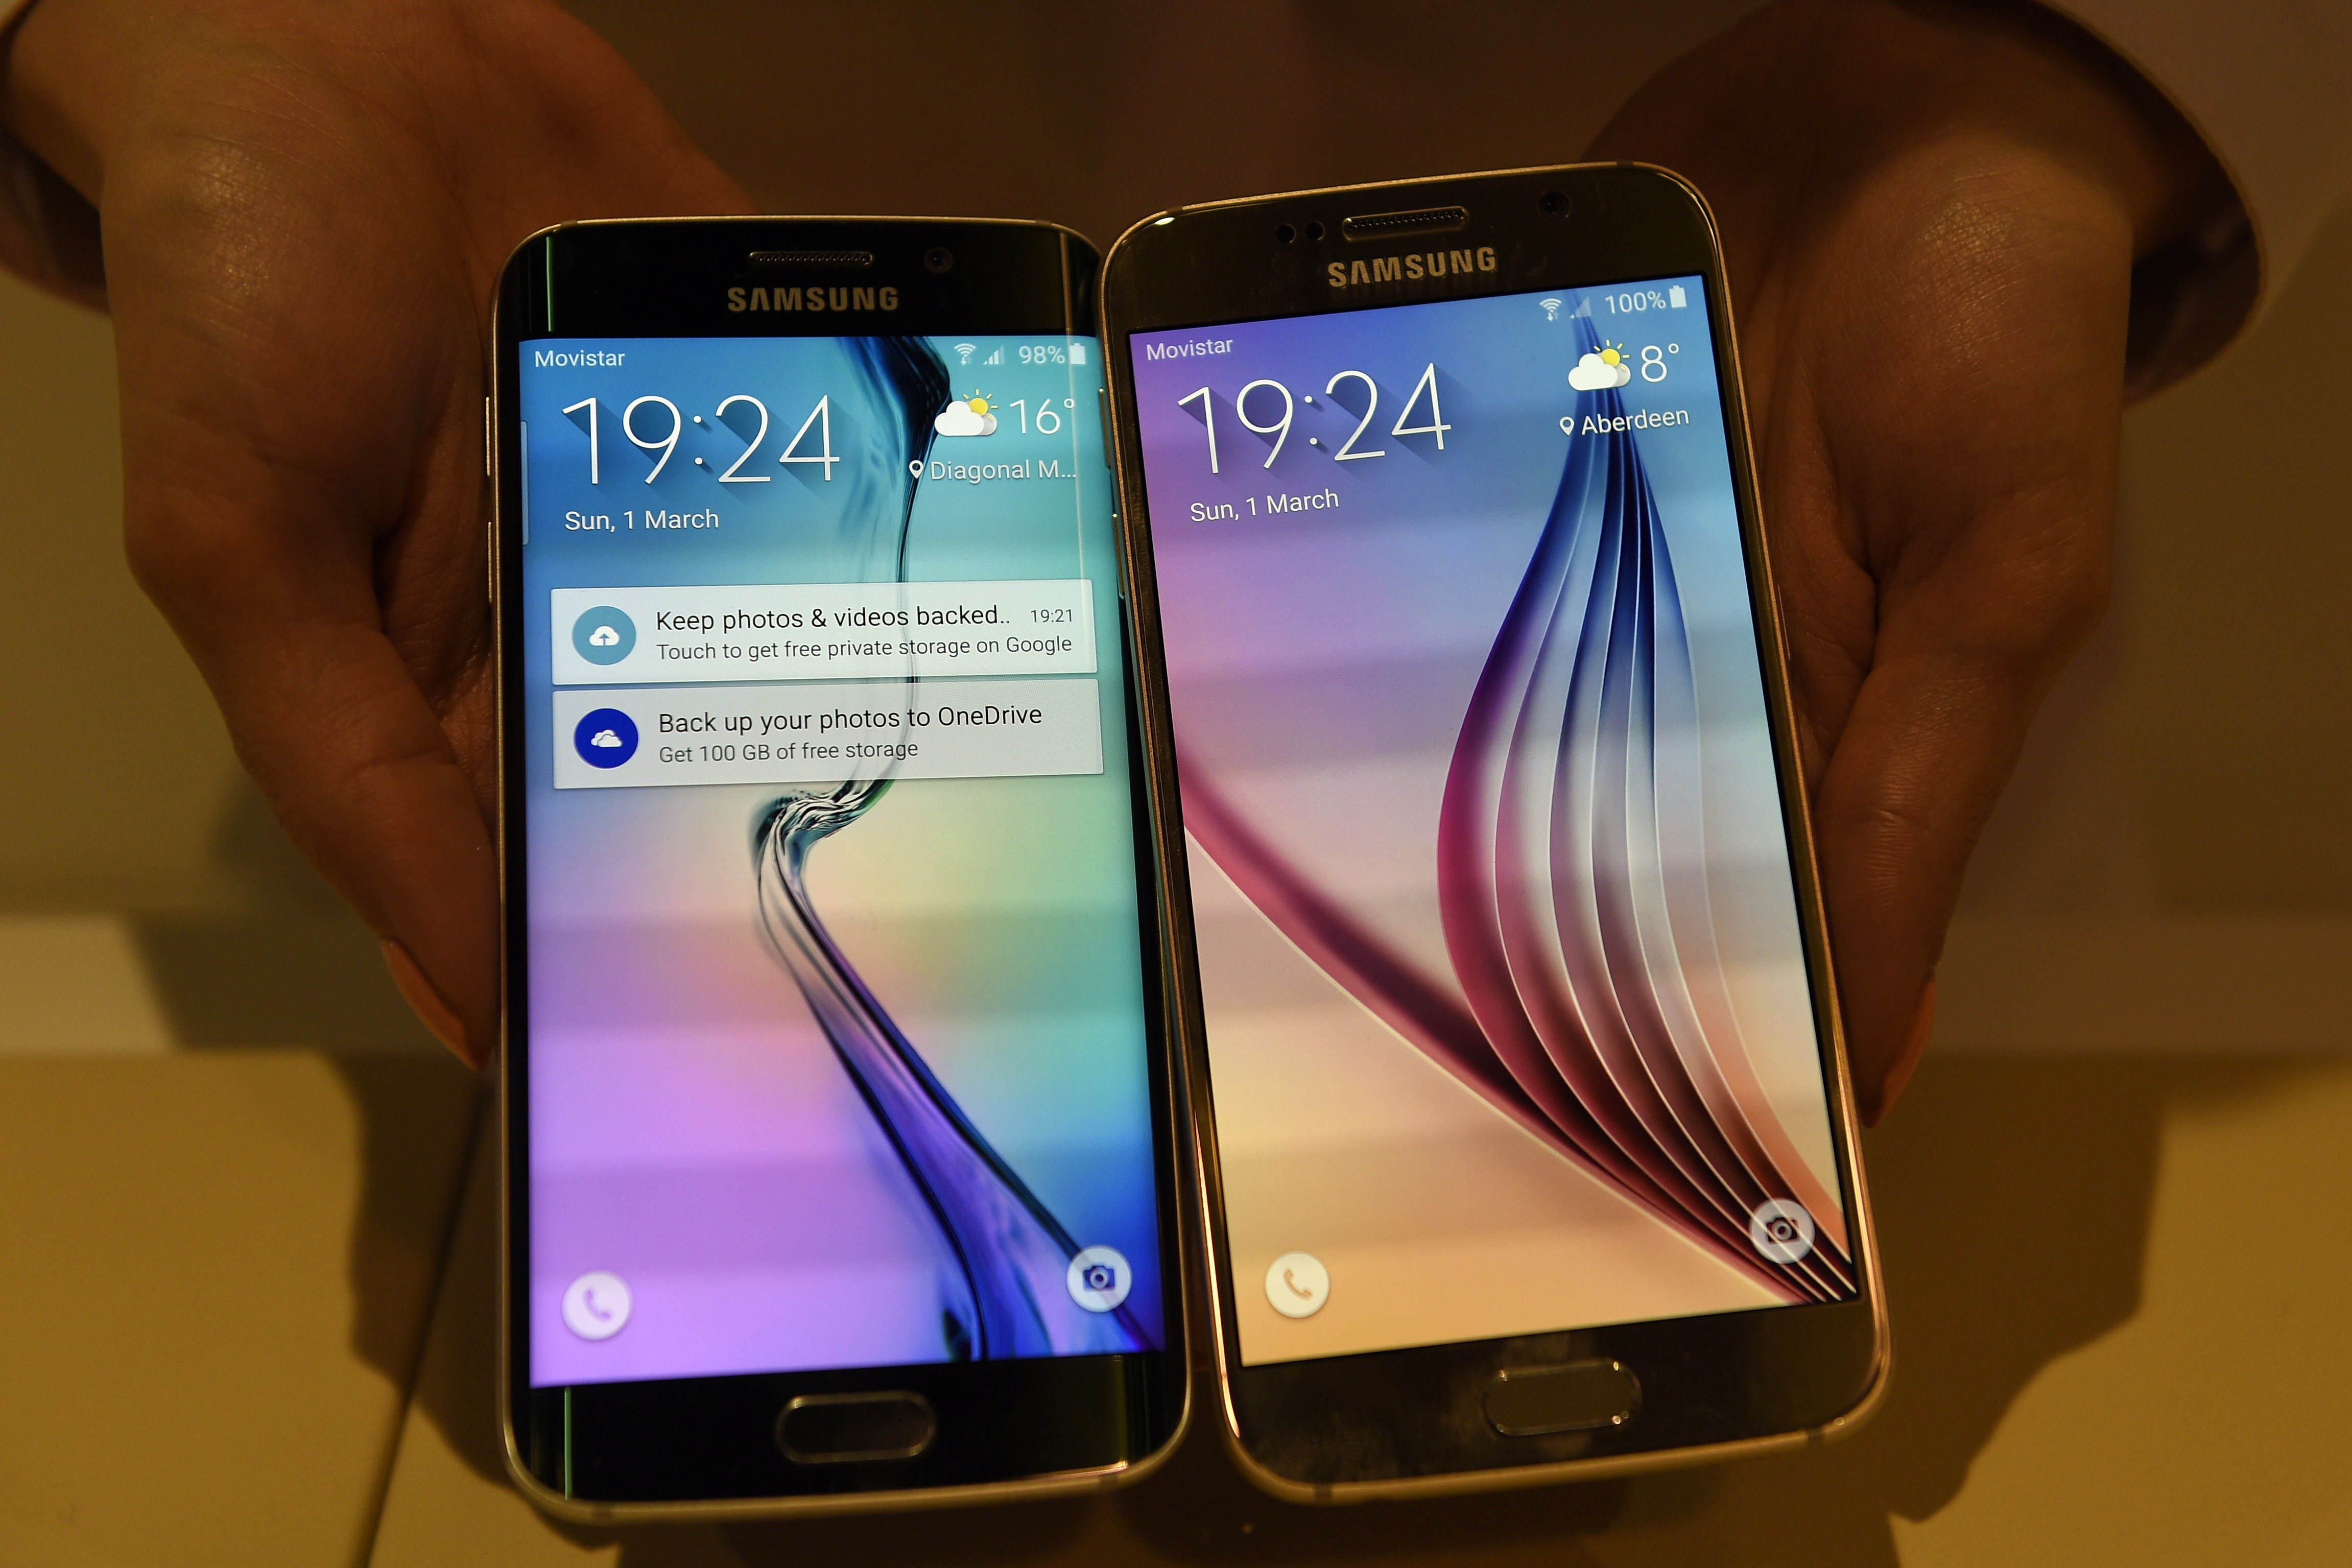 The Samsung Galaxy S6 Edge (L) and Samsung Galaxy S6 are presented during the 2015 Mobile World Congress in Barcelona on March 1, 2015.